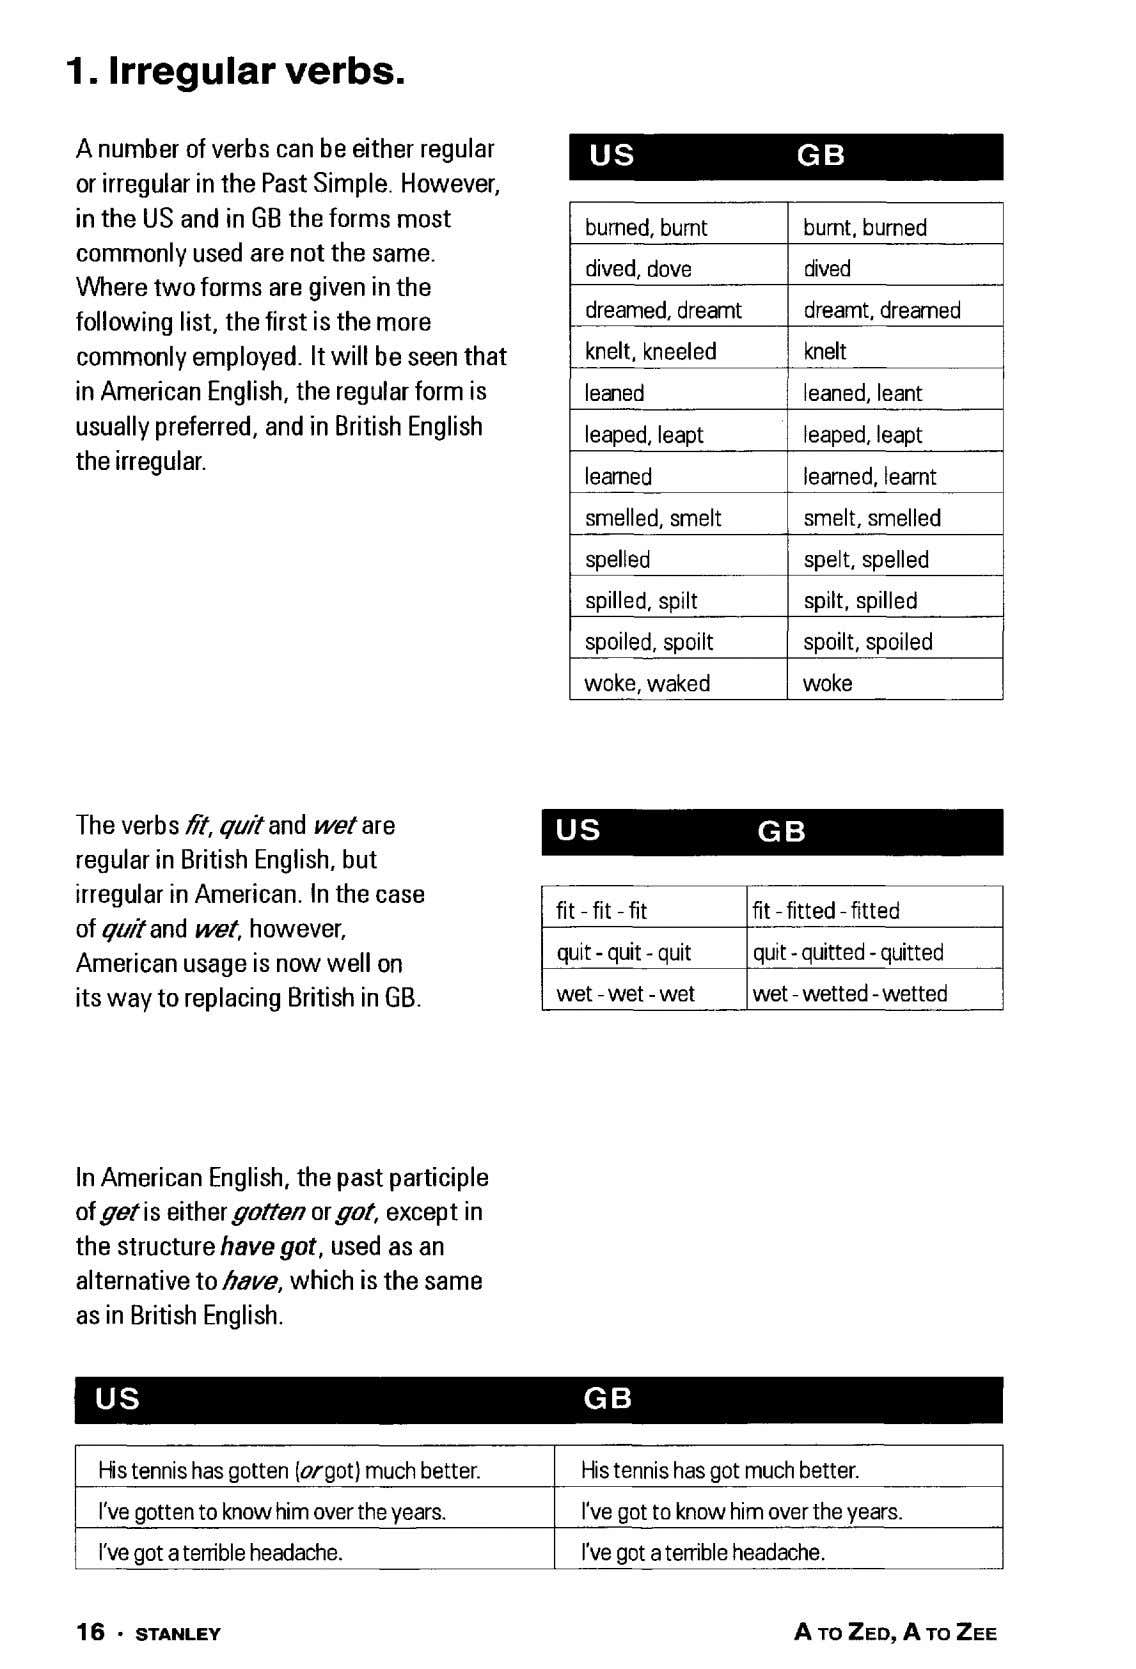 1. Irregular verbs. A number of verbs can be either regular US GB or irregular